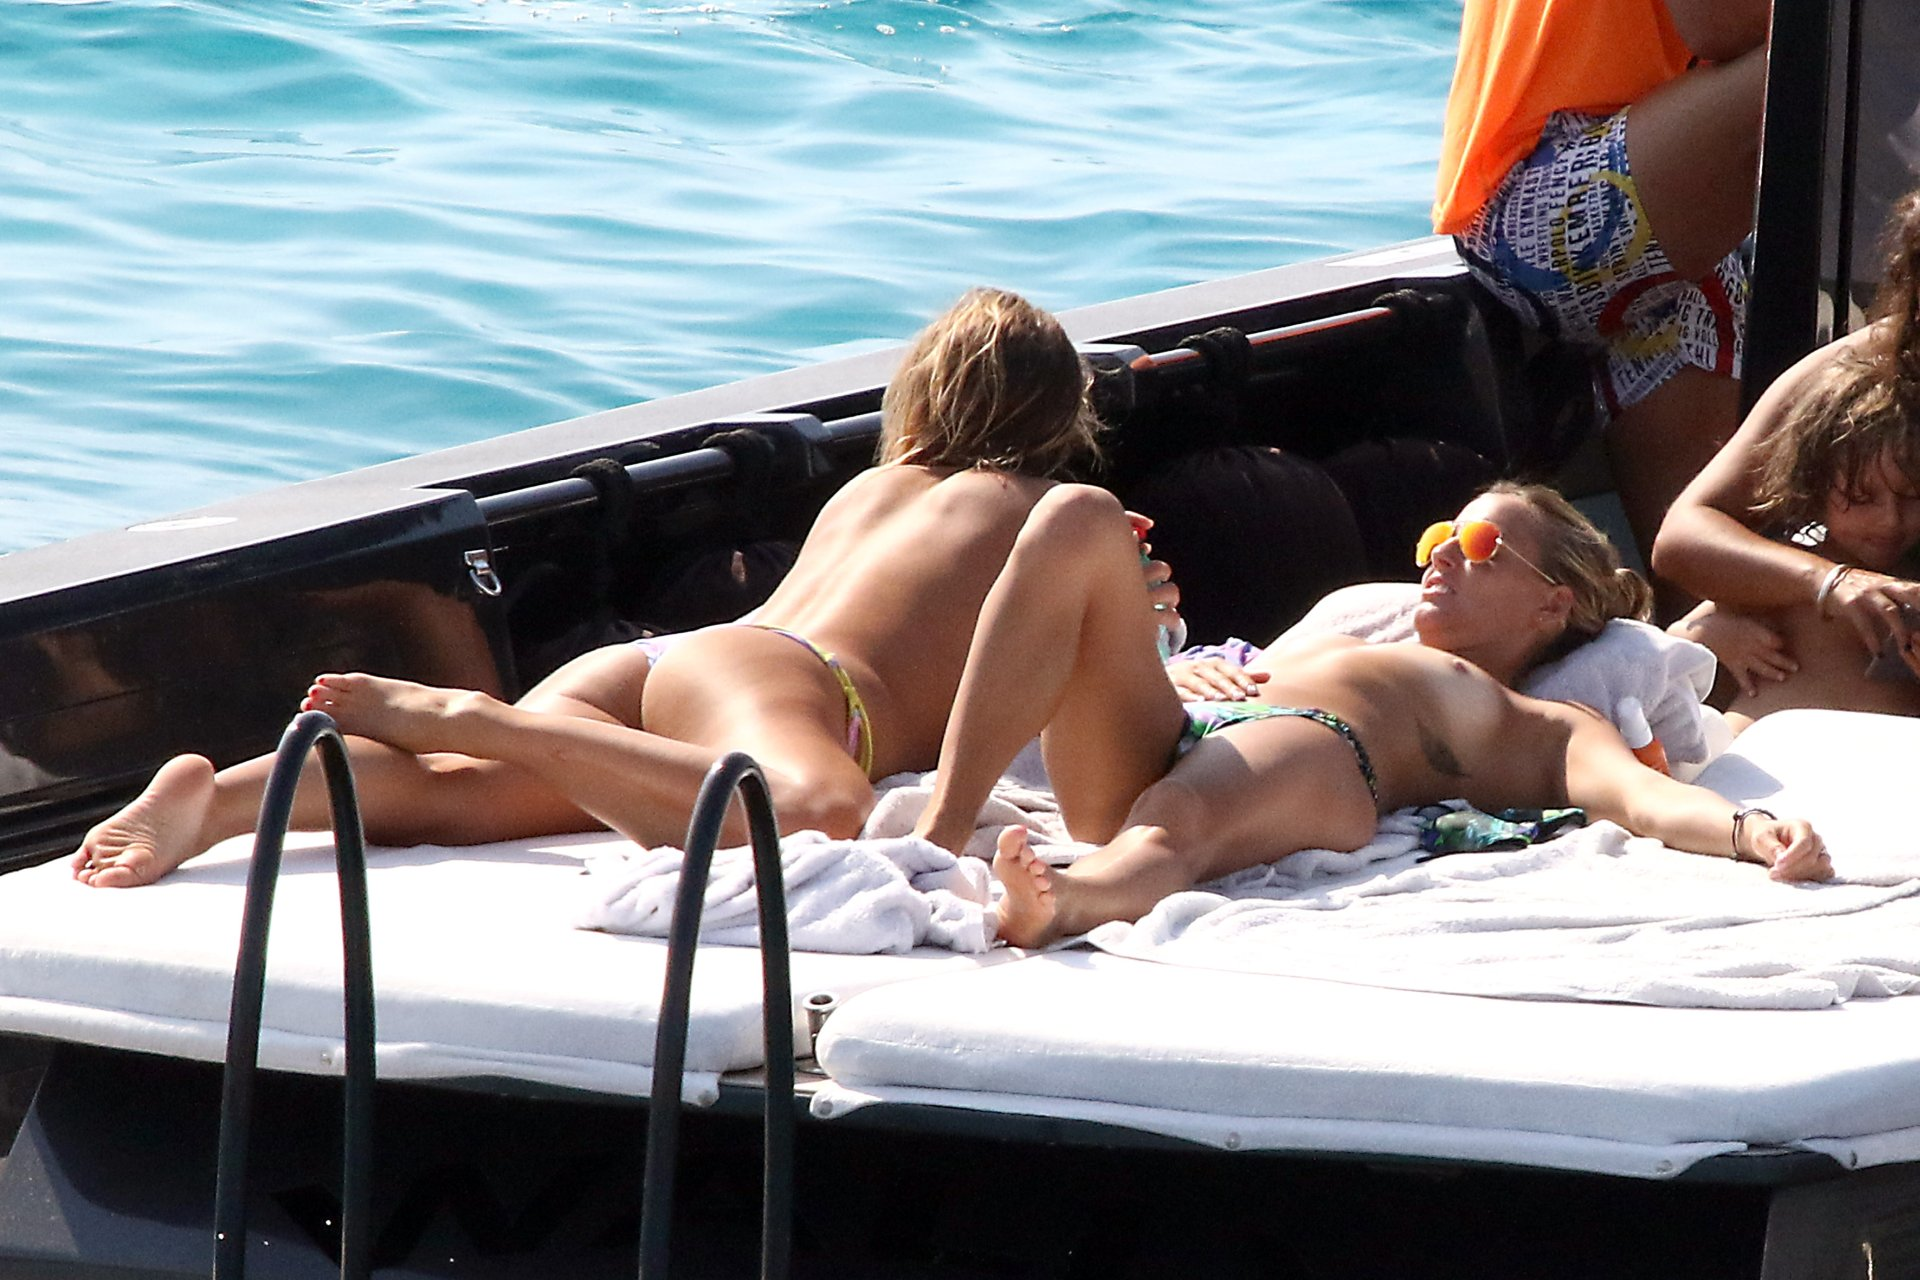 Tania Cagnotto Nude Photos and Videos nudes (74 photo), Sexy Celebrity photo